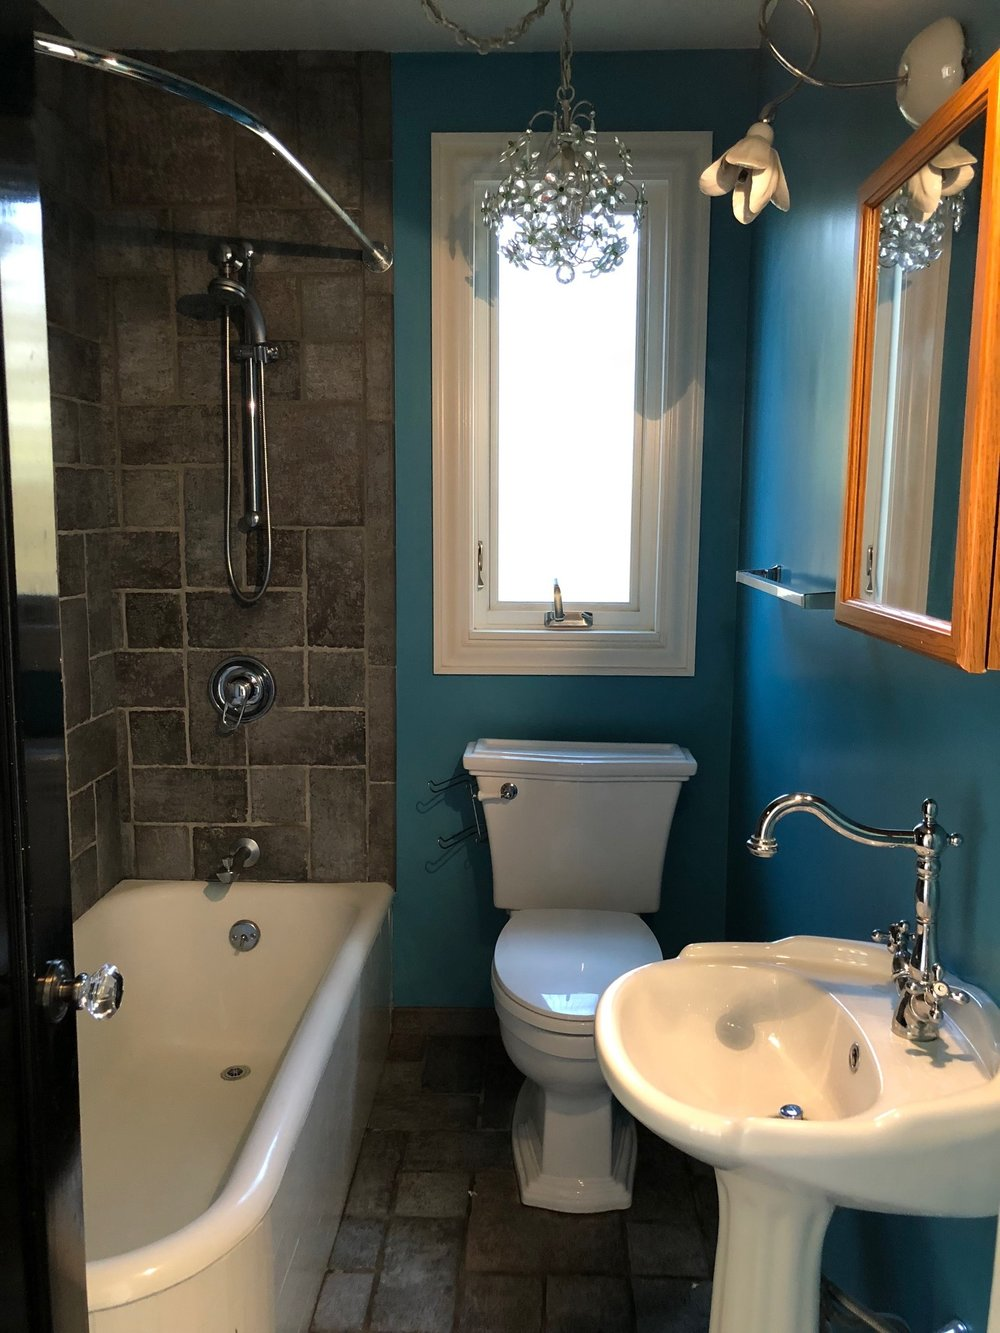 Crocker Highlands Modern Mediterranean Bathroom Renovation, Interior Design and Staging- before